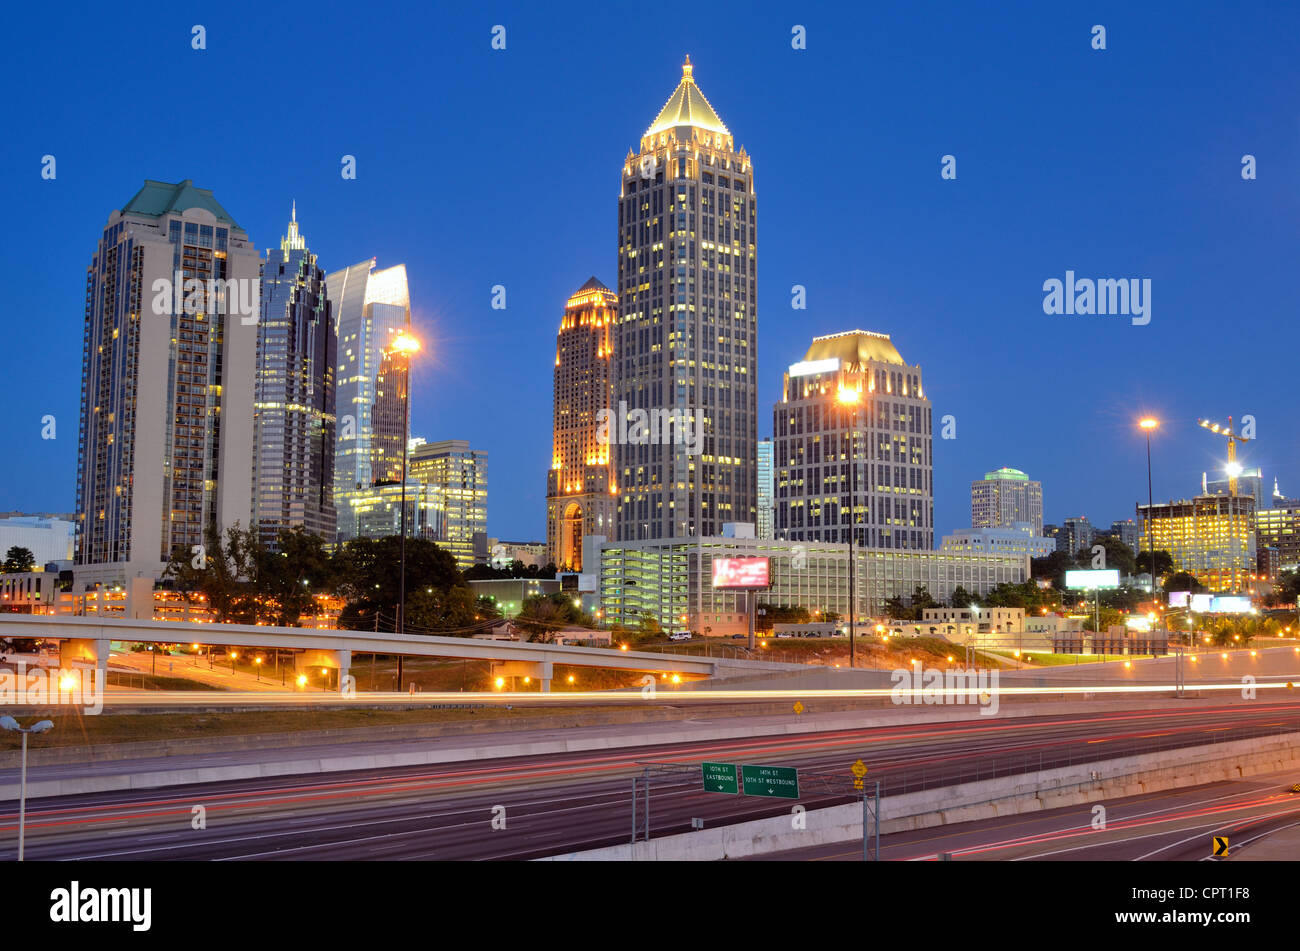 Interstate 85 runs below the skyline of Midtown Atlanta, Georgia, USA. - Stock Image